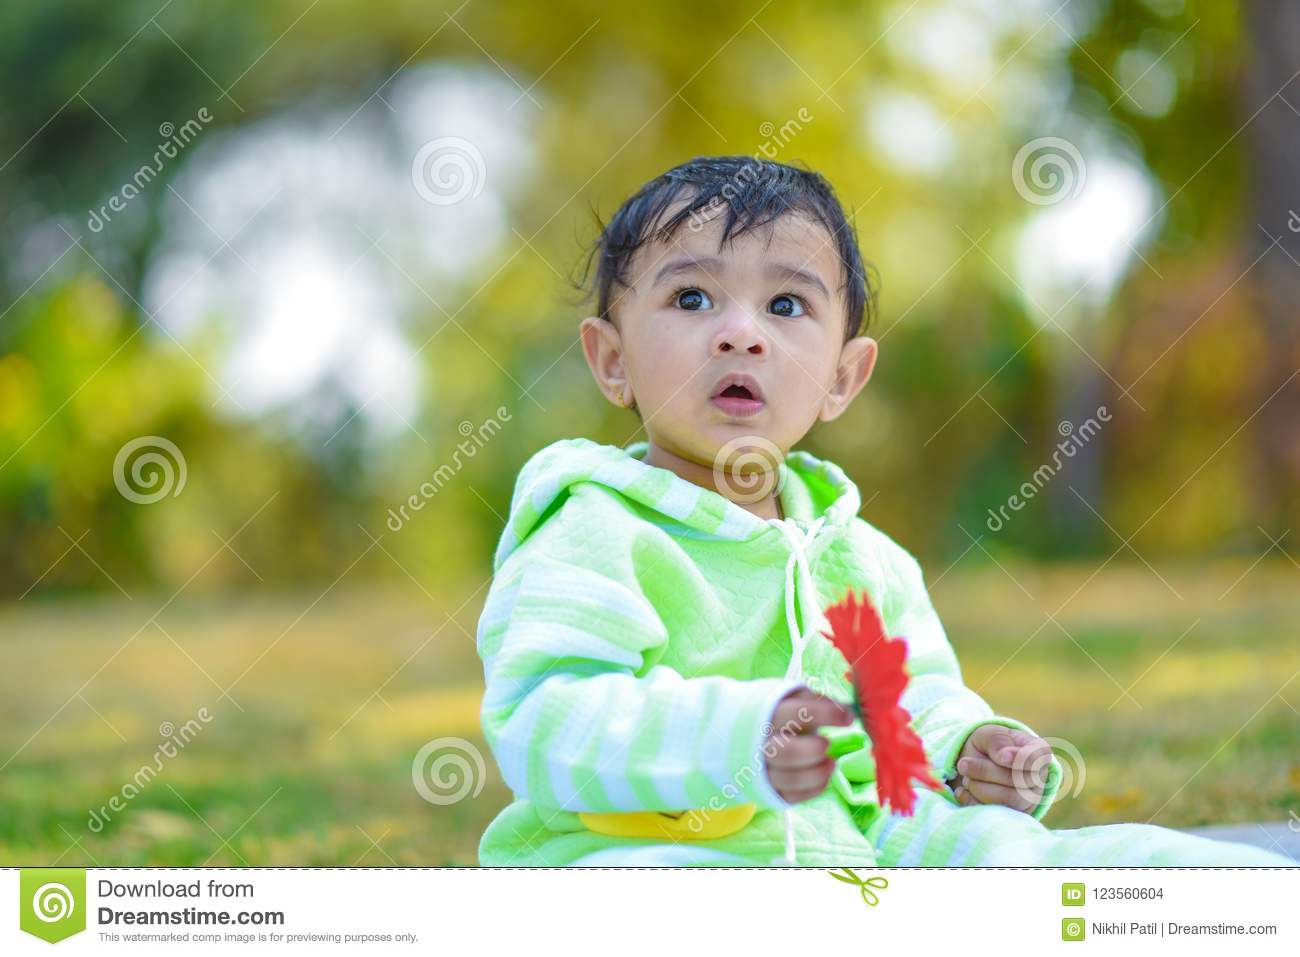 Cute indian baby boy playing at garden stock photo image of garden jpg  1300x957 Indian baby 594775c2bb915